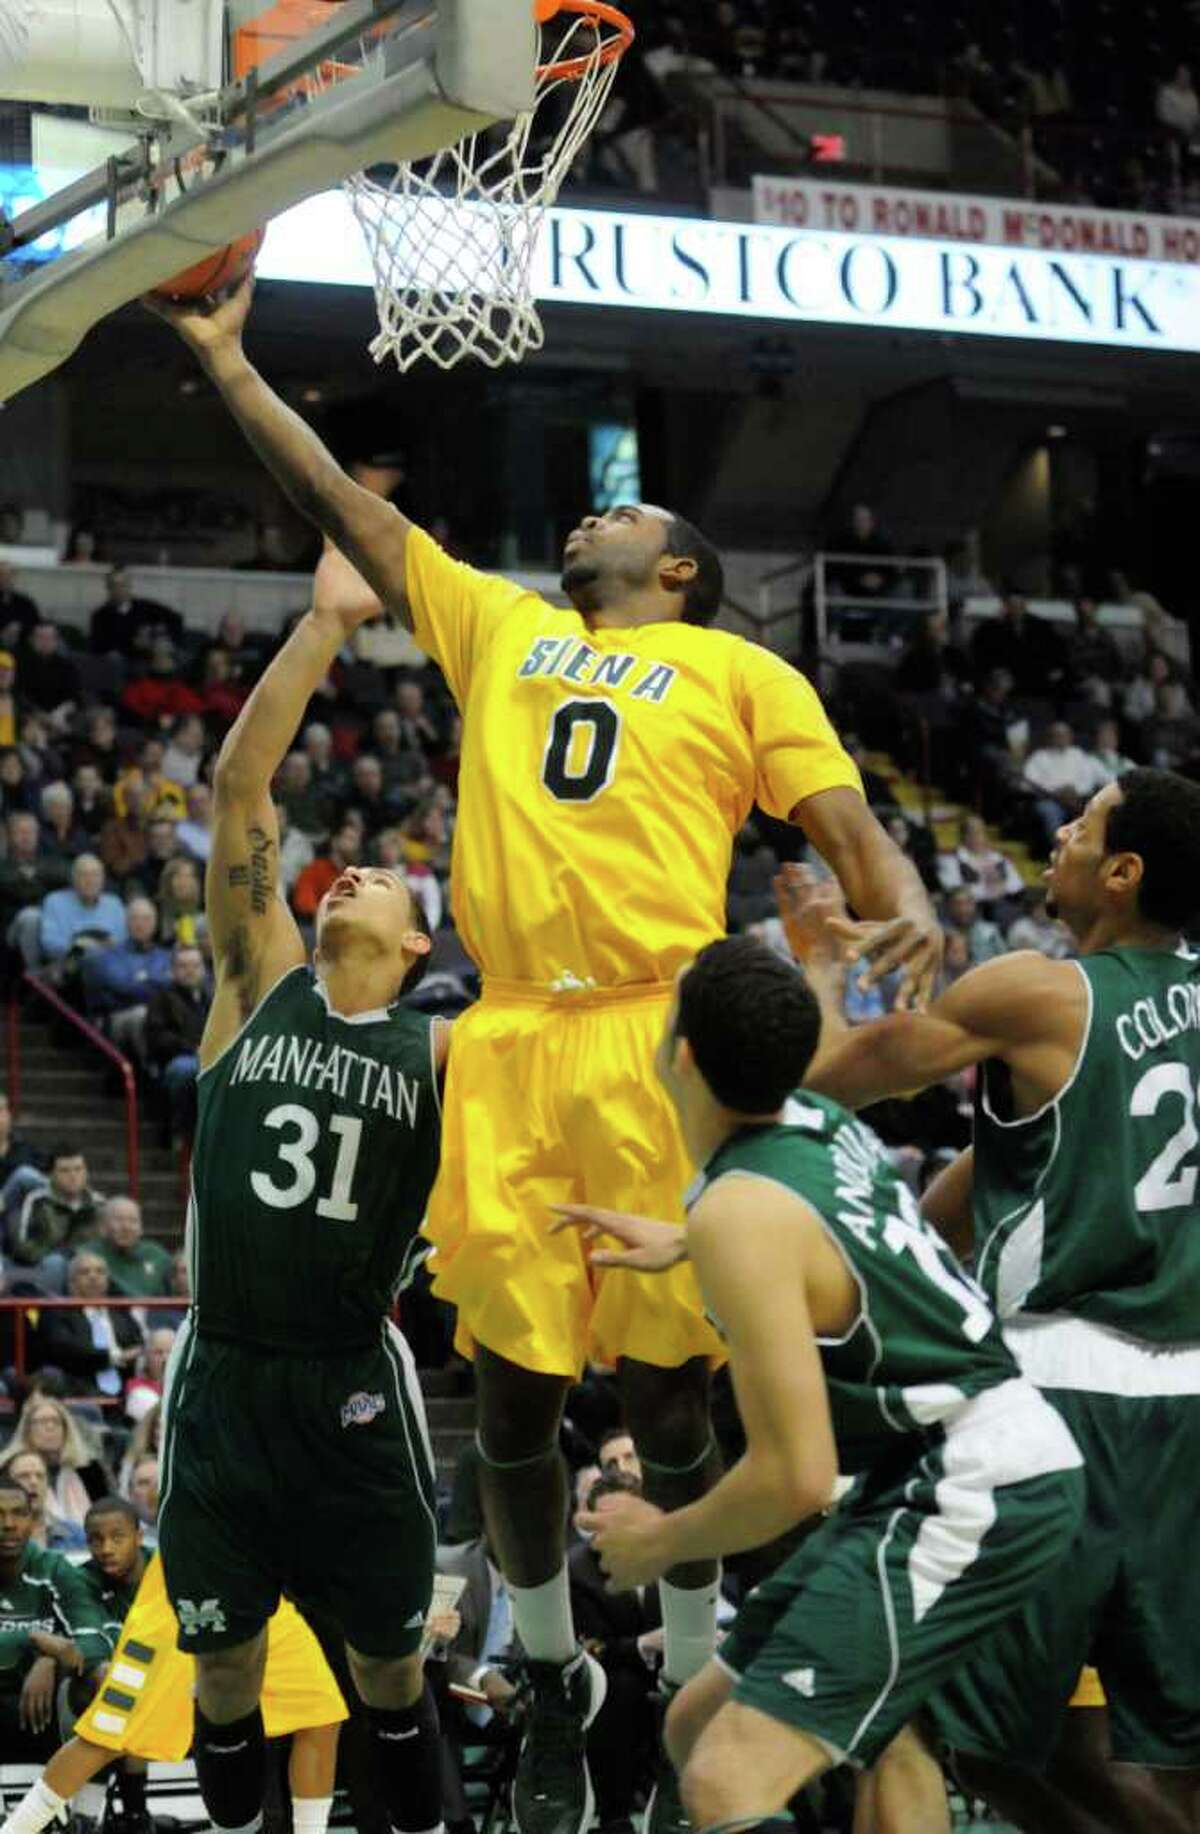 Siena's Brandon Walter drives to the basket during their mens college basketball game against Manhattan at the Times Union Center in Albany, New York Tuesday Feb.14, 2012.( Michael P. Farrell/Times Union)